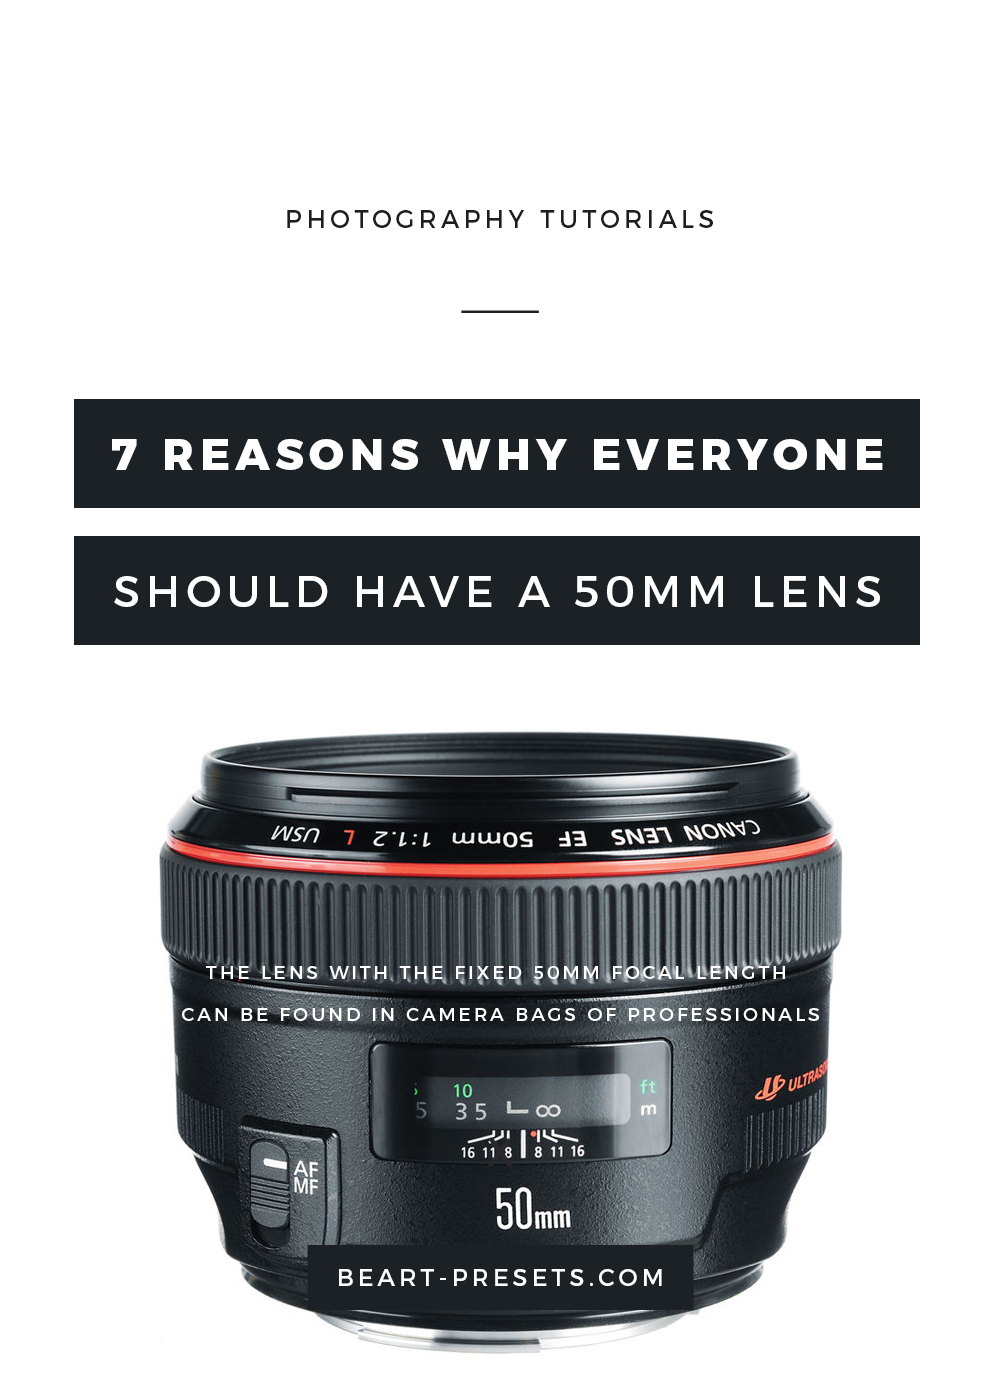 Top Reasons To Buy a 50mm Lens (The Nifty Fifty)